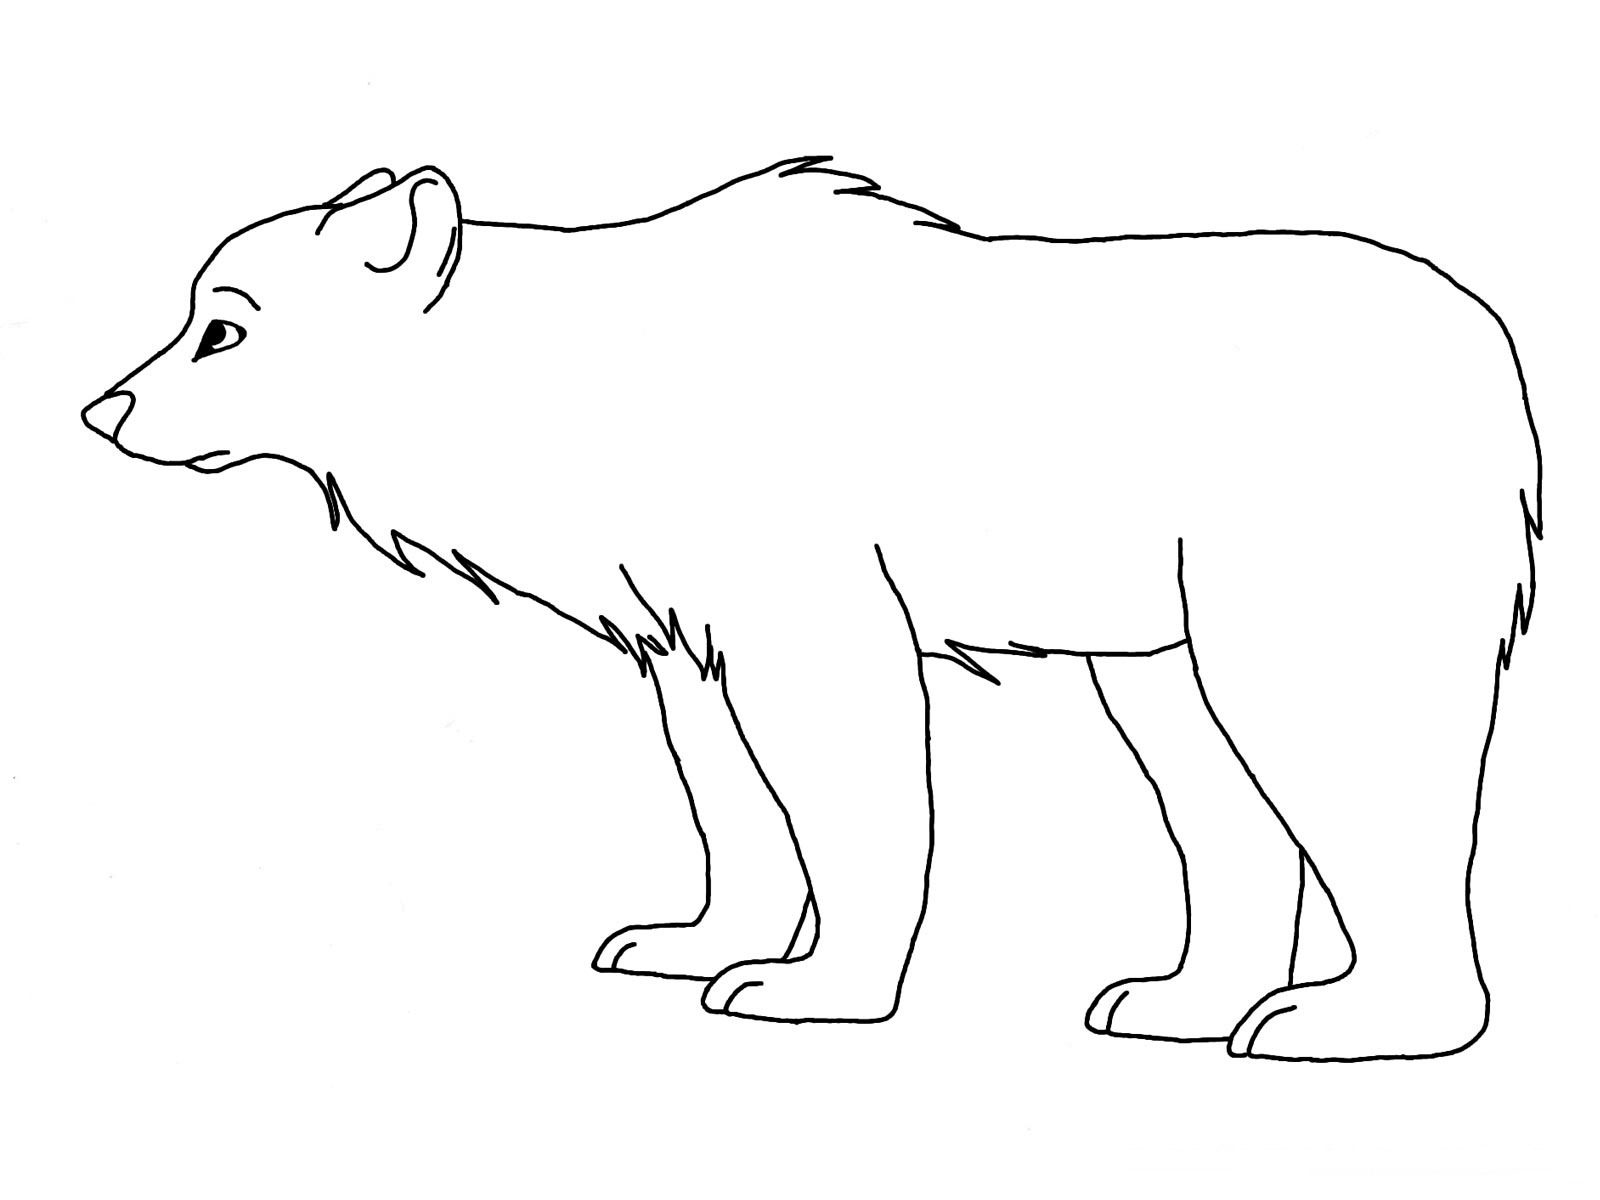 Polar animals coloring pages for kids - Polar Bear Coloring Pages Printable